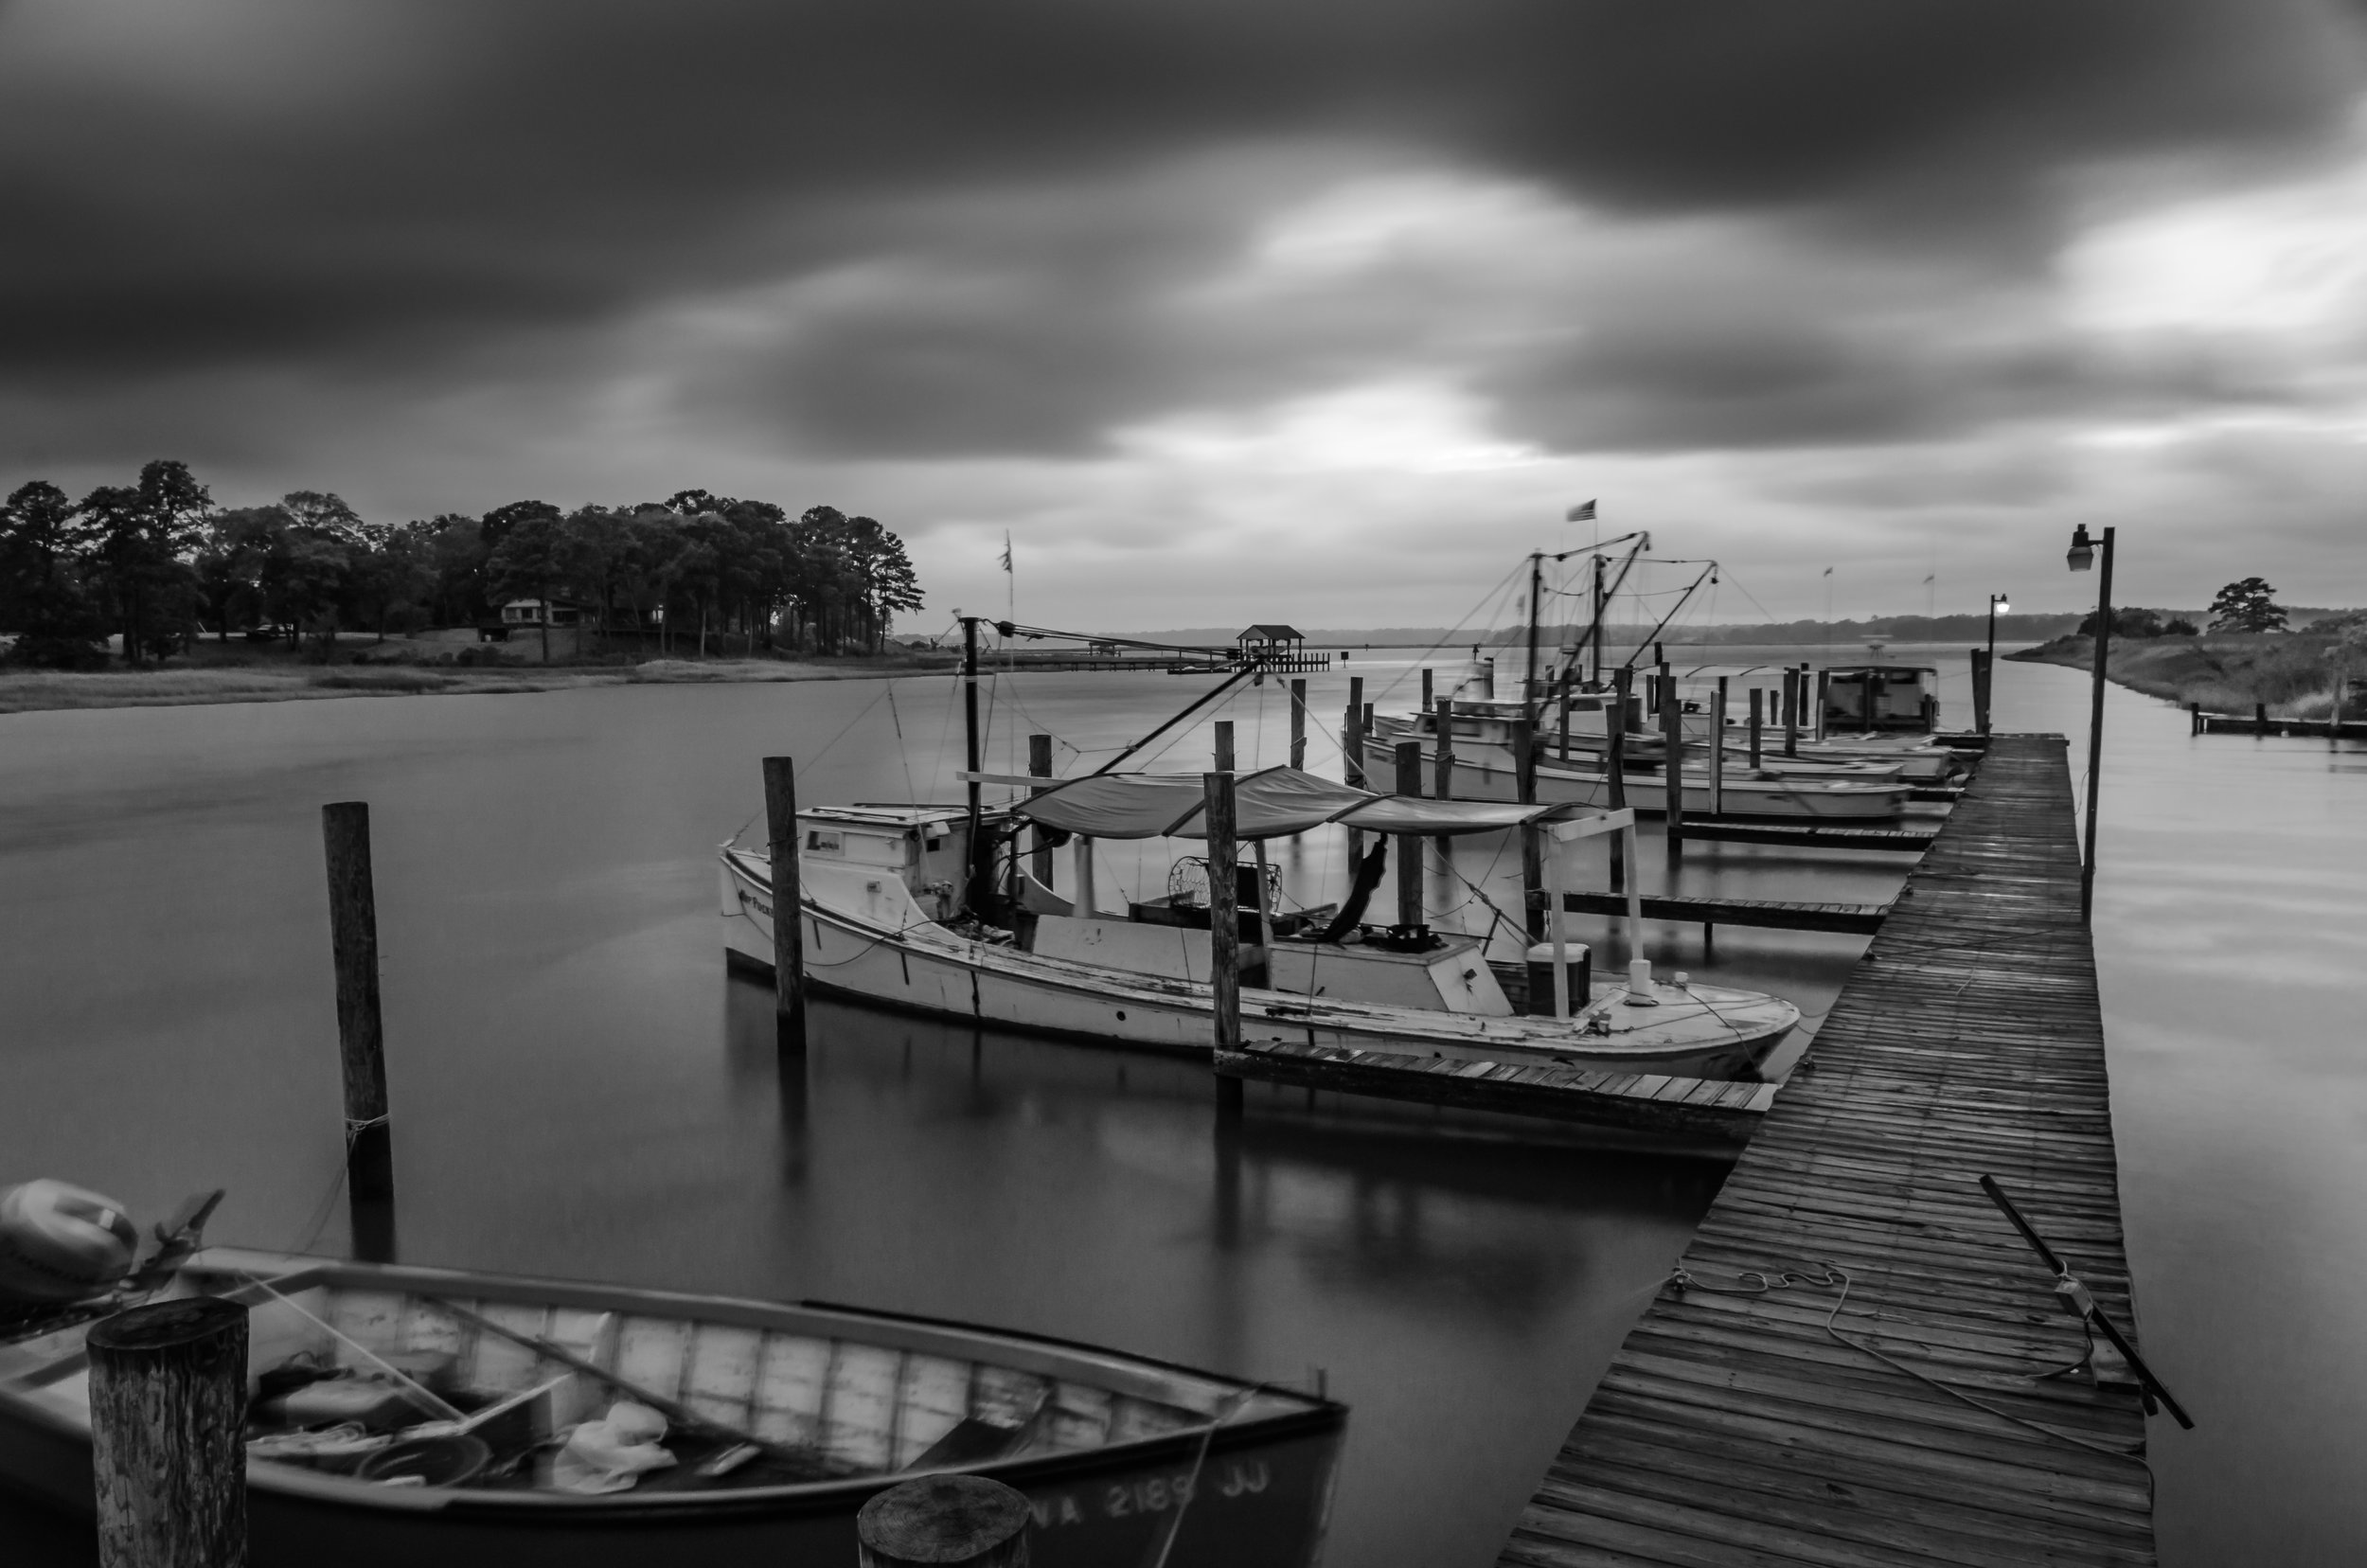 Isle of Wight-Virginia-boats-dock-pier-storm-black and white-monochrome.JPG